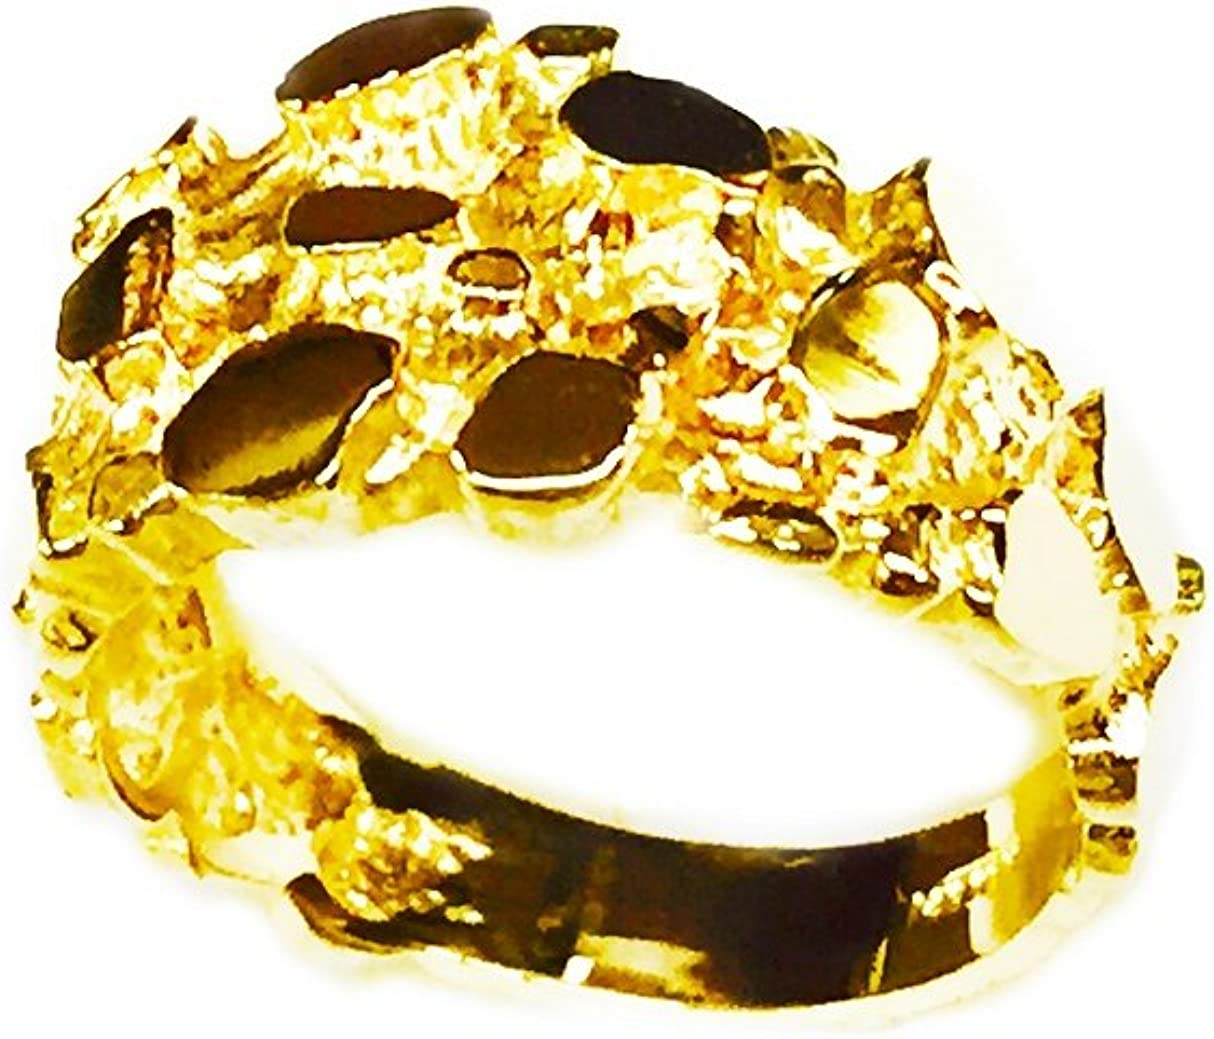 14Kt Yellow Gold Nugget Design Fashion Ring 5 Grams